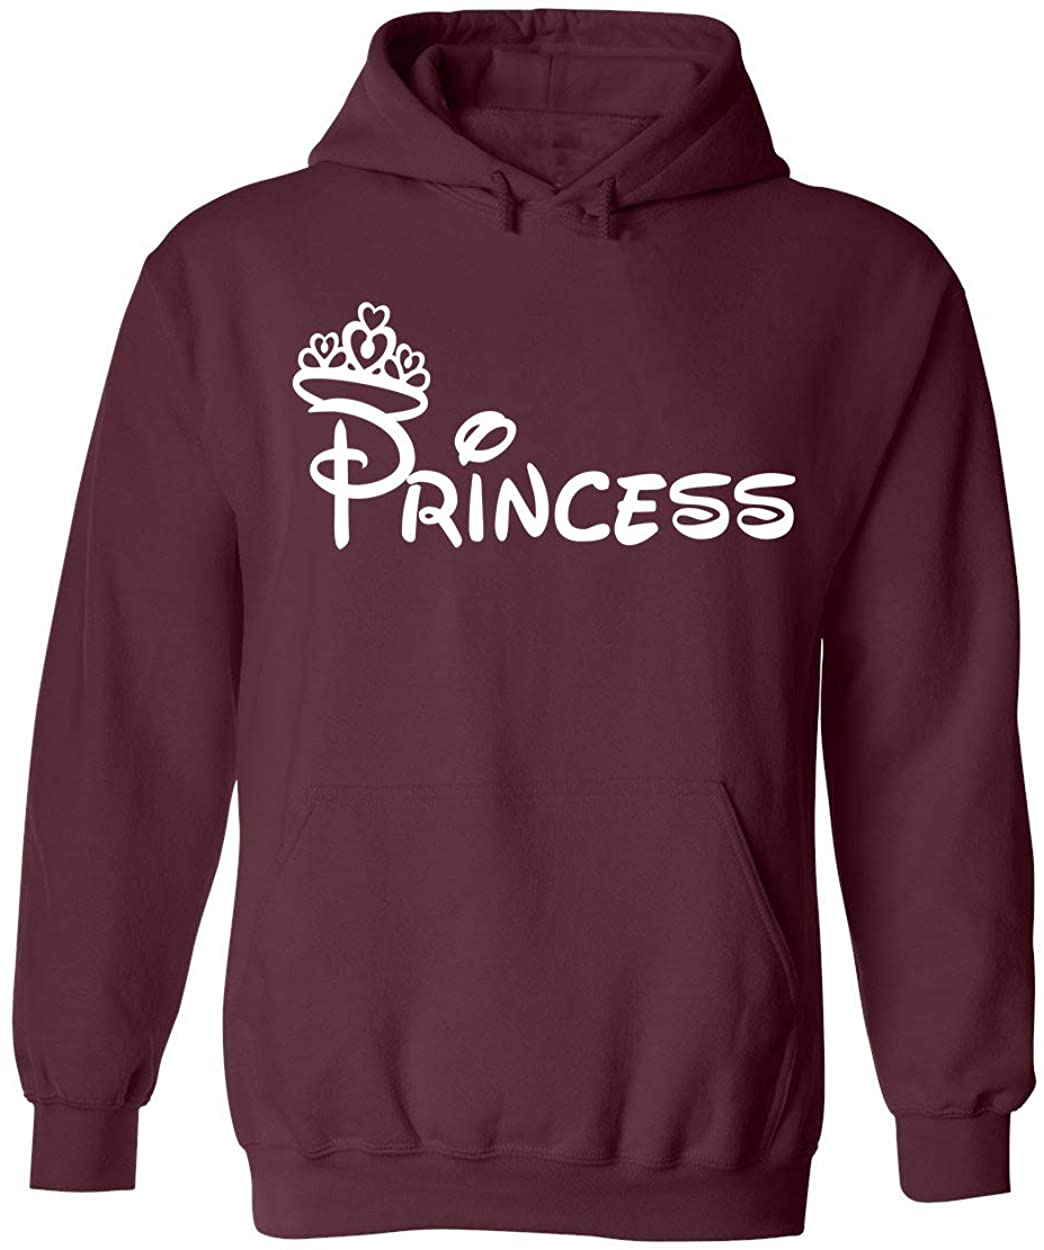 Priencess Minnie Fashion Popular for Women Pullover Hoodie